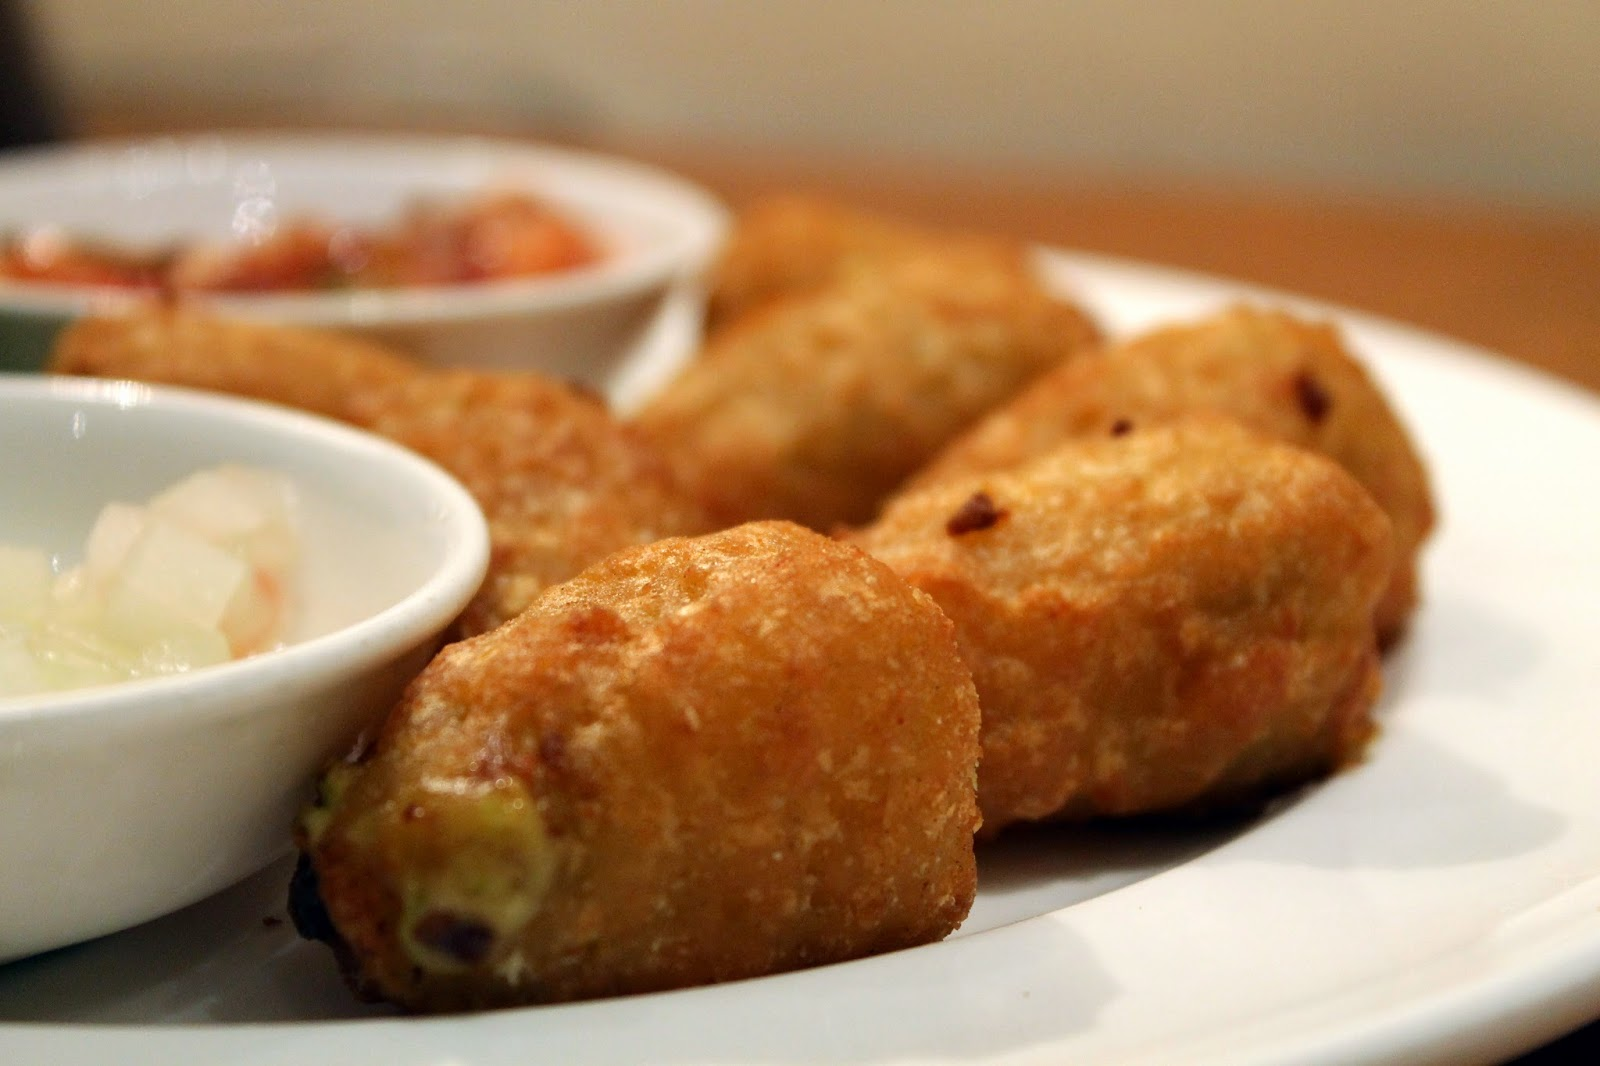 Jalapeño Cheese Poppers at Hyatt's All Day Room Dining - Pune'